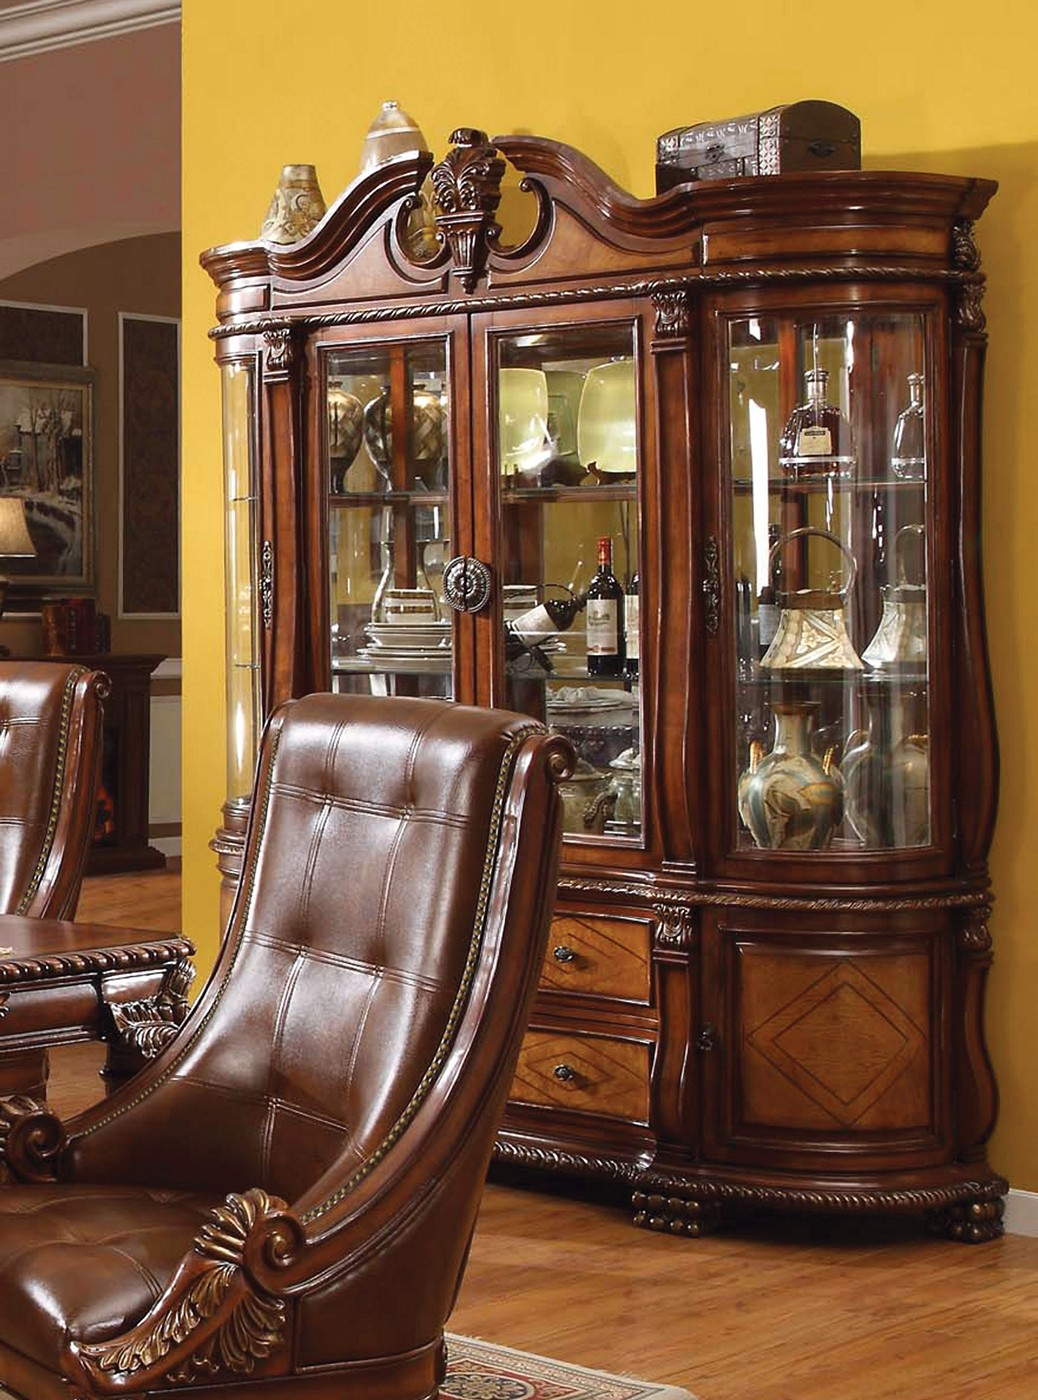 Greyson Traditional Ornate Touch Light China Cabinet in Cherry Finish